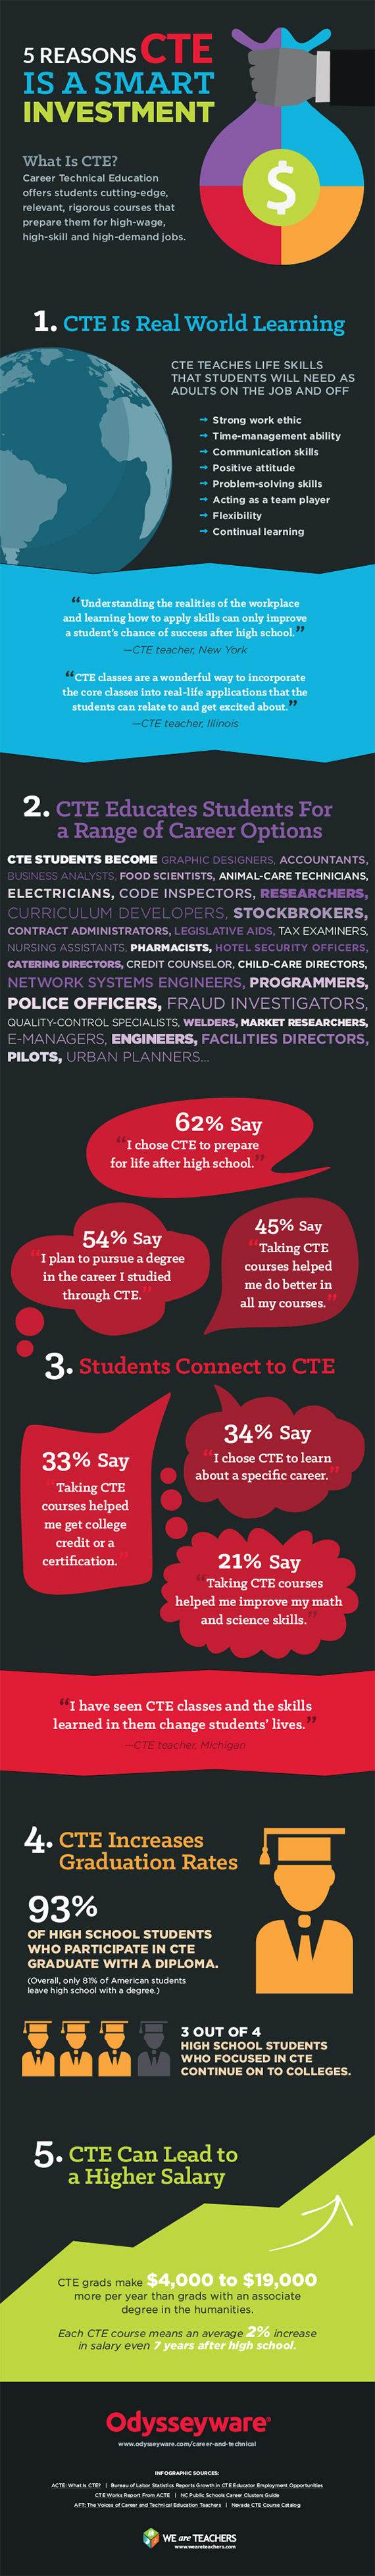 CTE-infographic-full.png